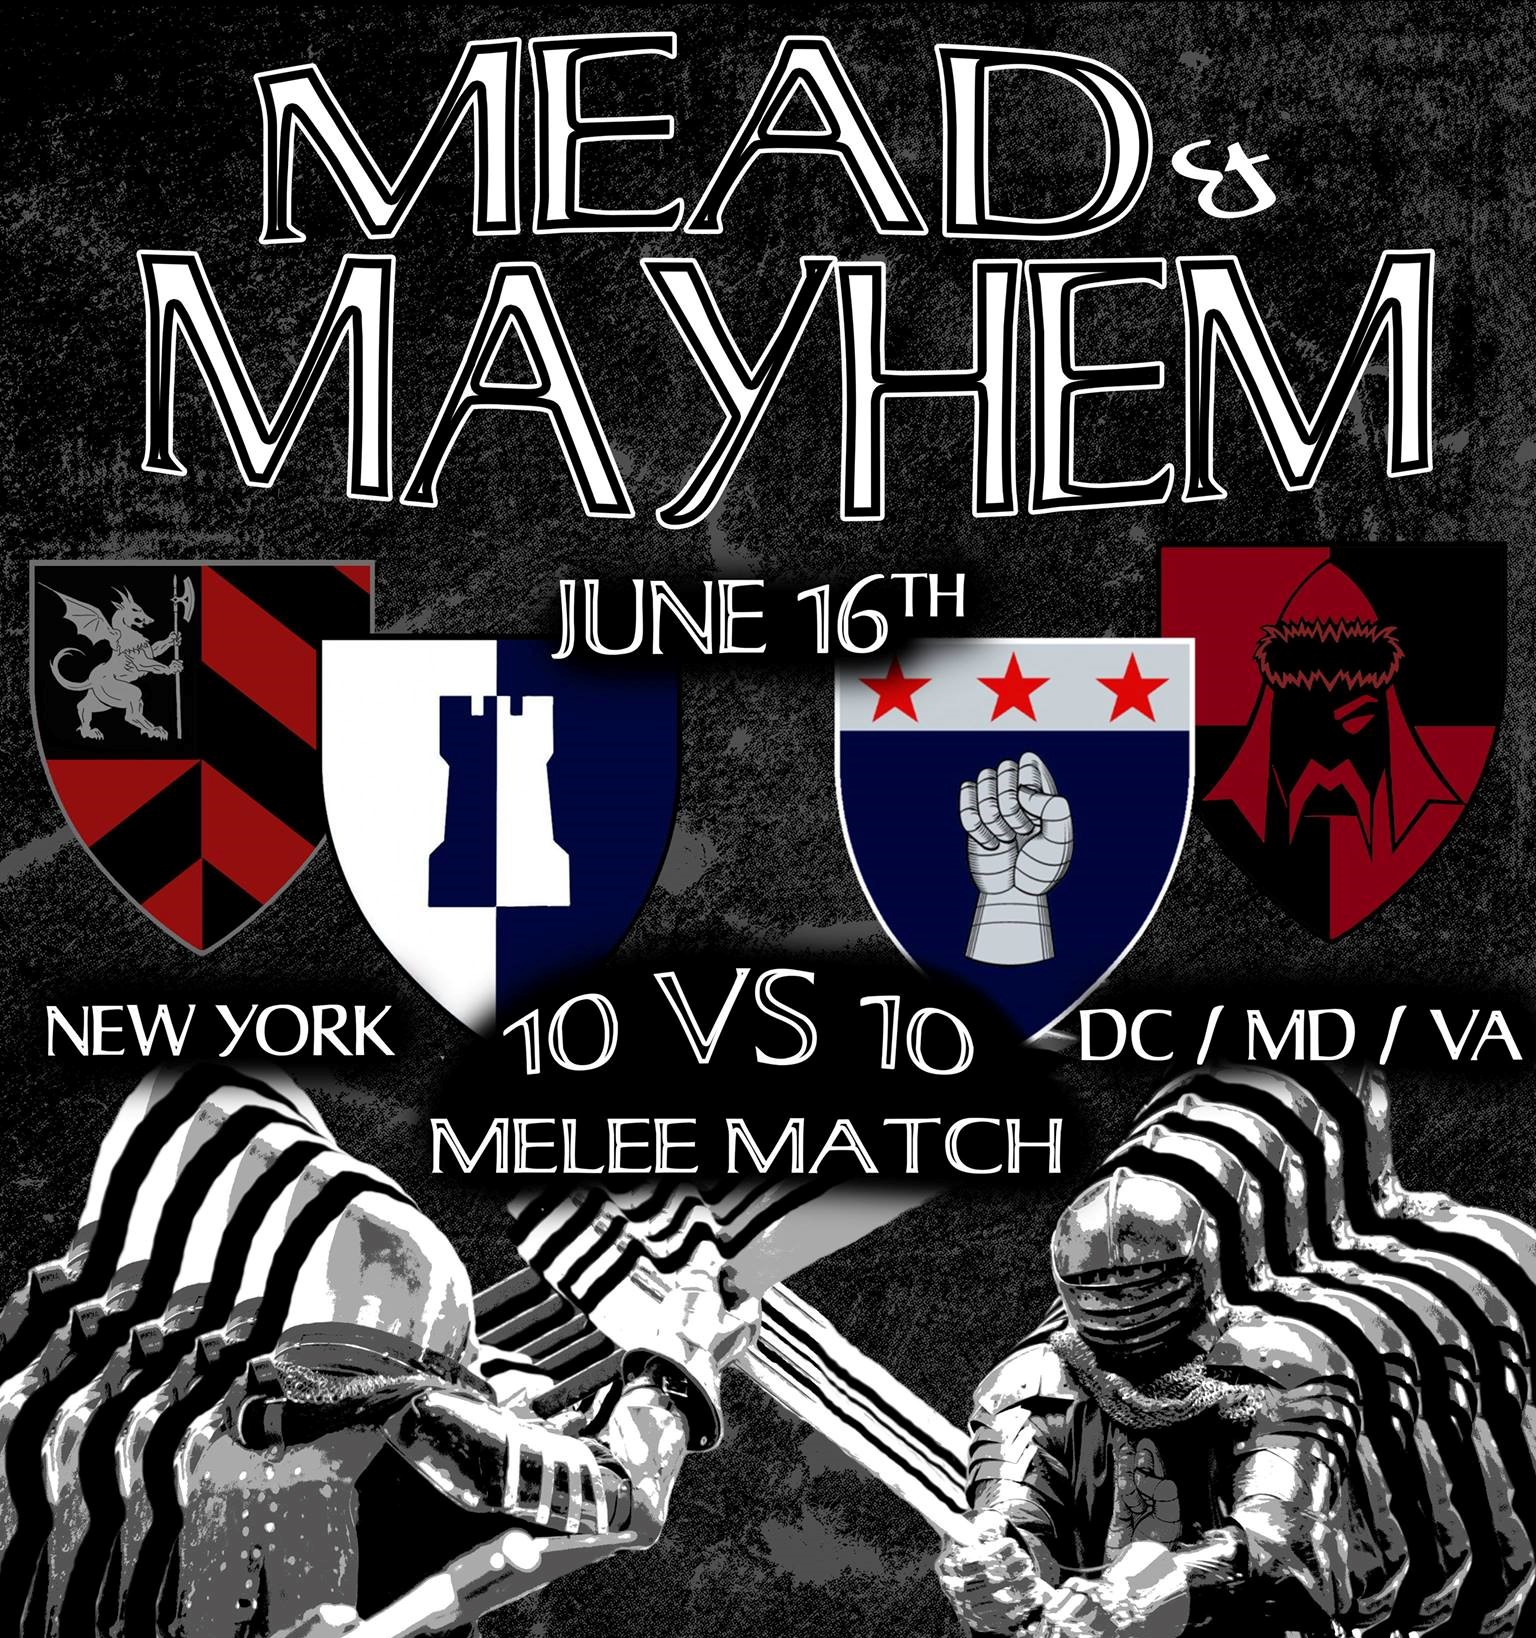 Culpeper-Culpeper-VA-Mead-and-Mayhem-Mountain-Run-Winery-VA-Outdoors-Battle-Armored-Combat-League-Mid-Atlantic-Region